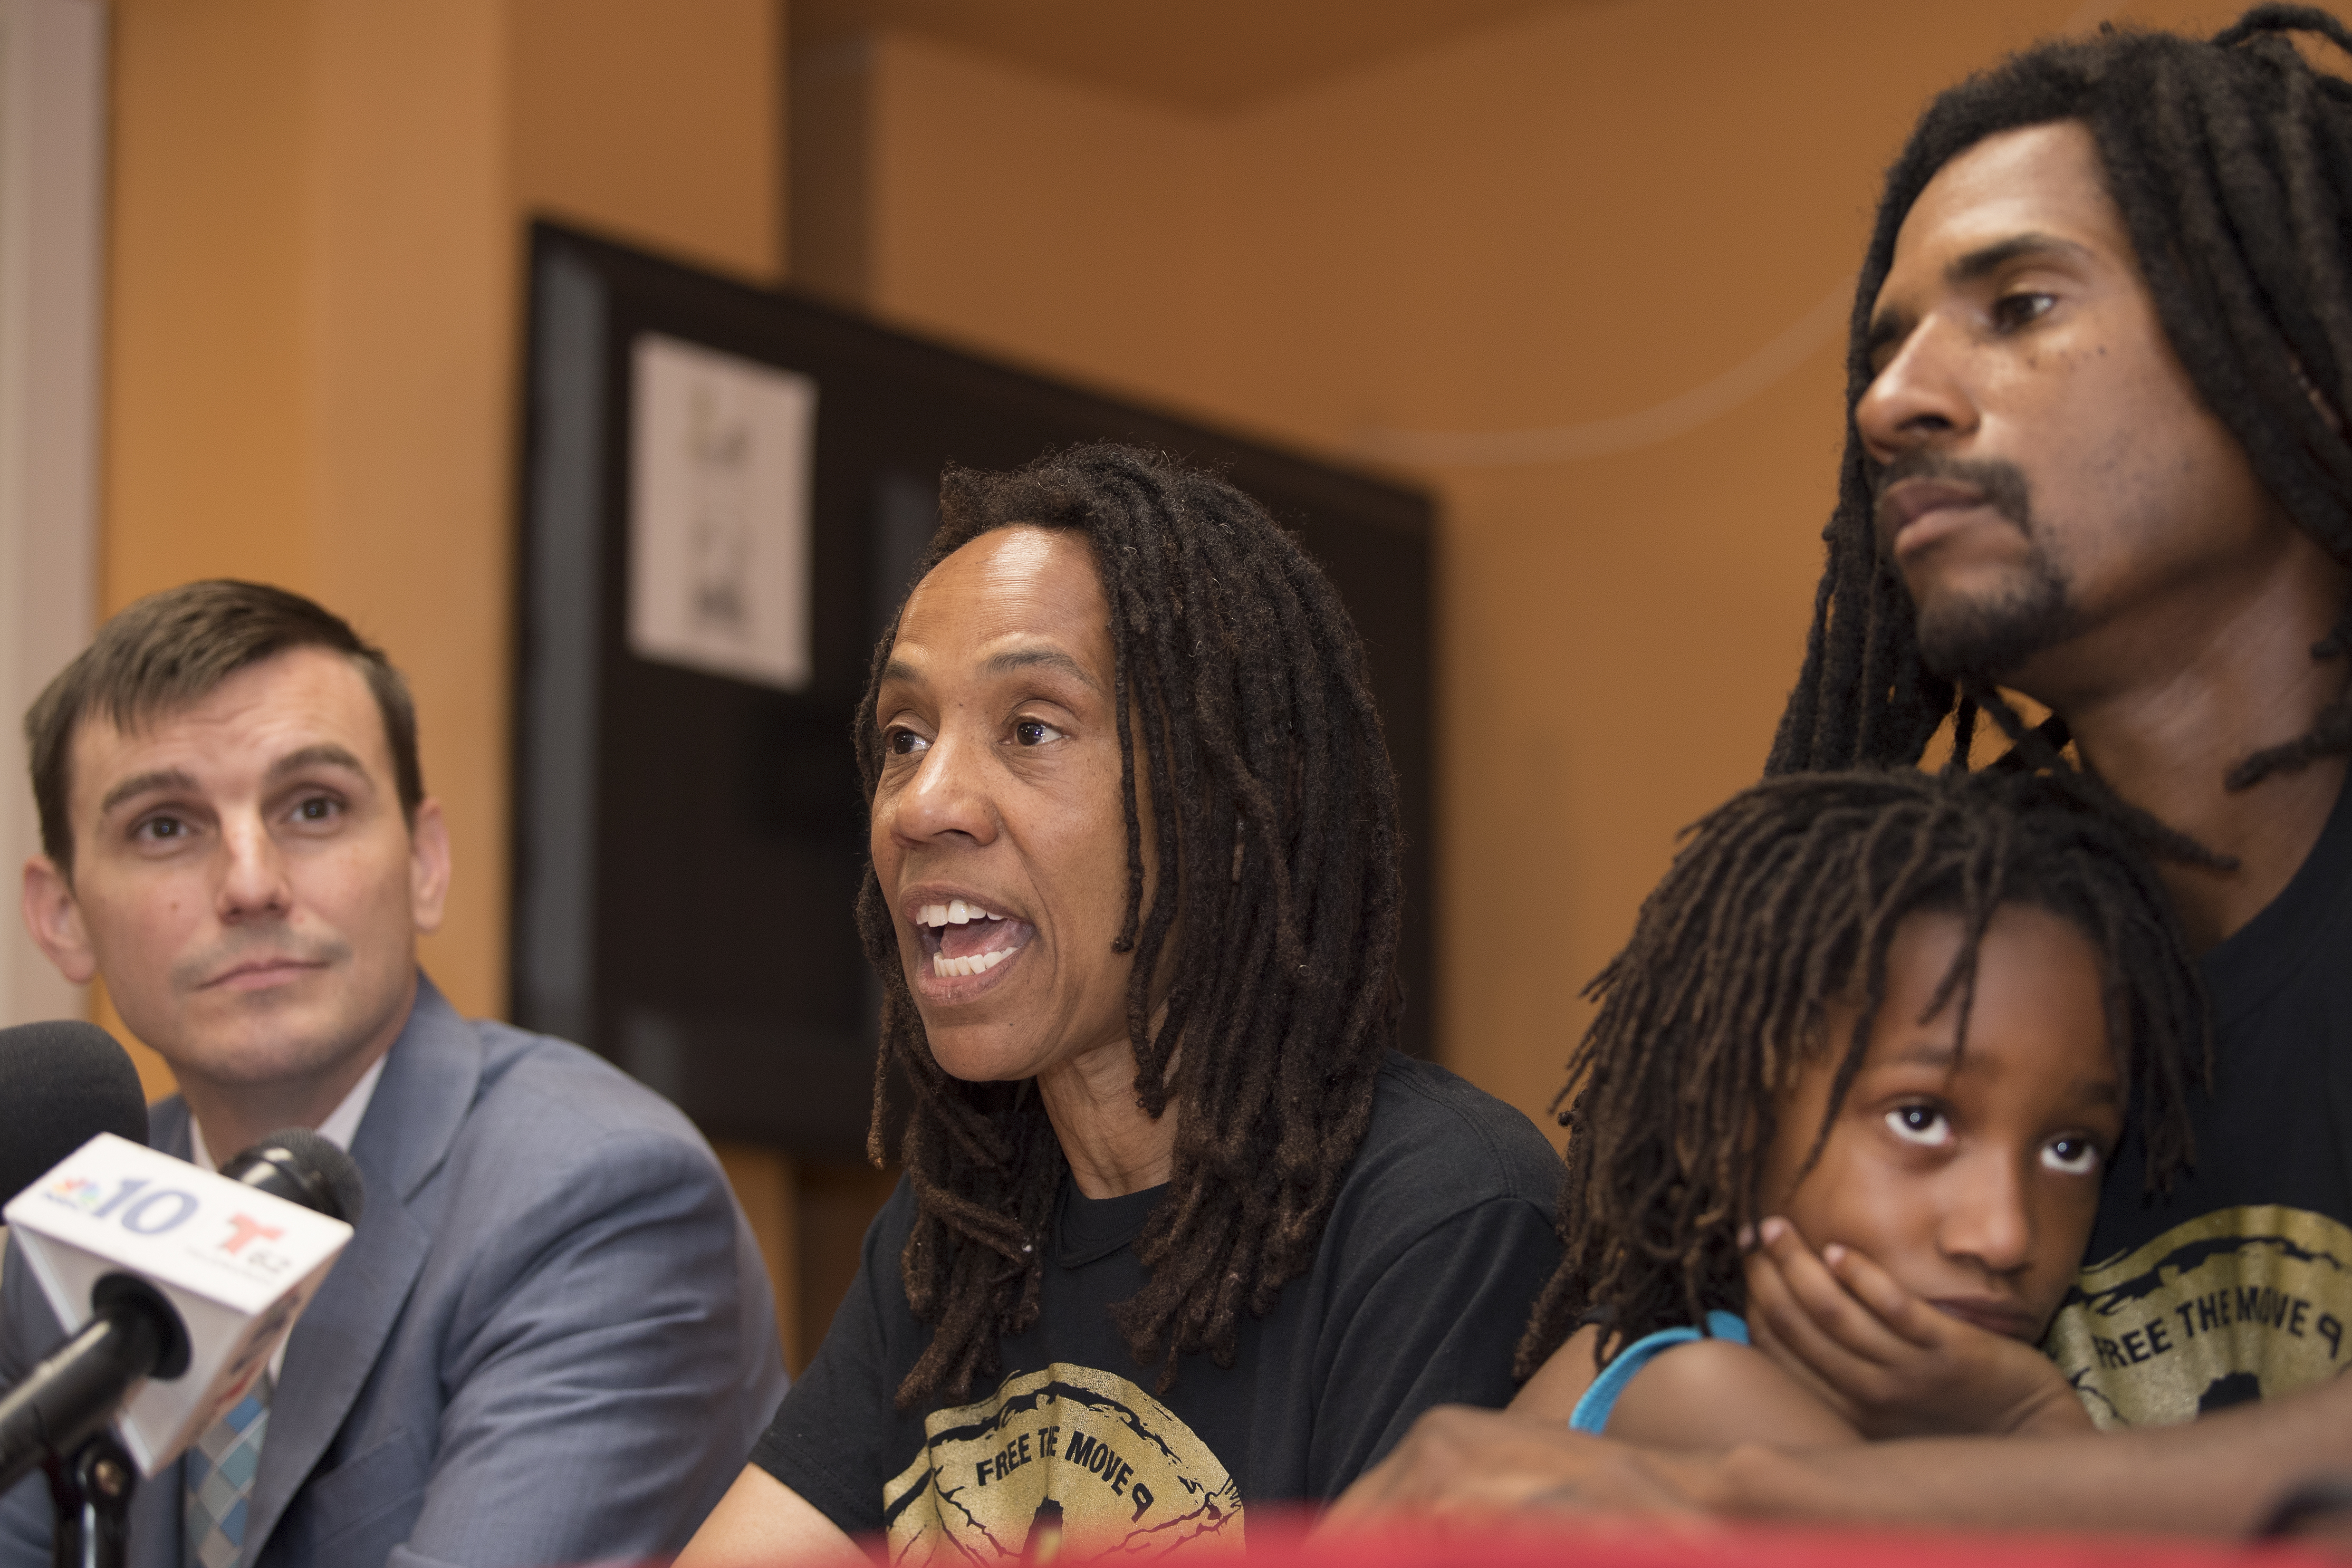 Attorney Brad Thomson, Debbie Africa, Alia Africa, (granddaughter) and Mike Africa, son, speaks to the media during her first public appearance at the Faith Immanuel Lutheran Church, in East Lansdowne, Pennsylvania. Tuesday, June 19, 2018. The first MOVE member was granted parole, after 38 years in prison.